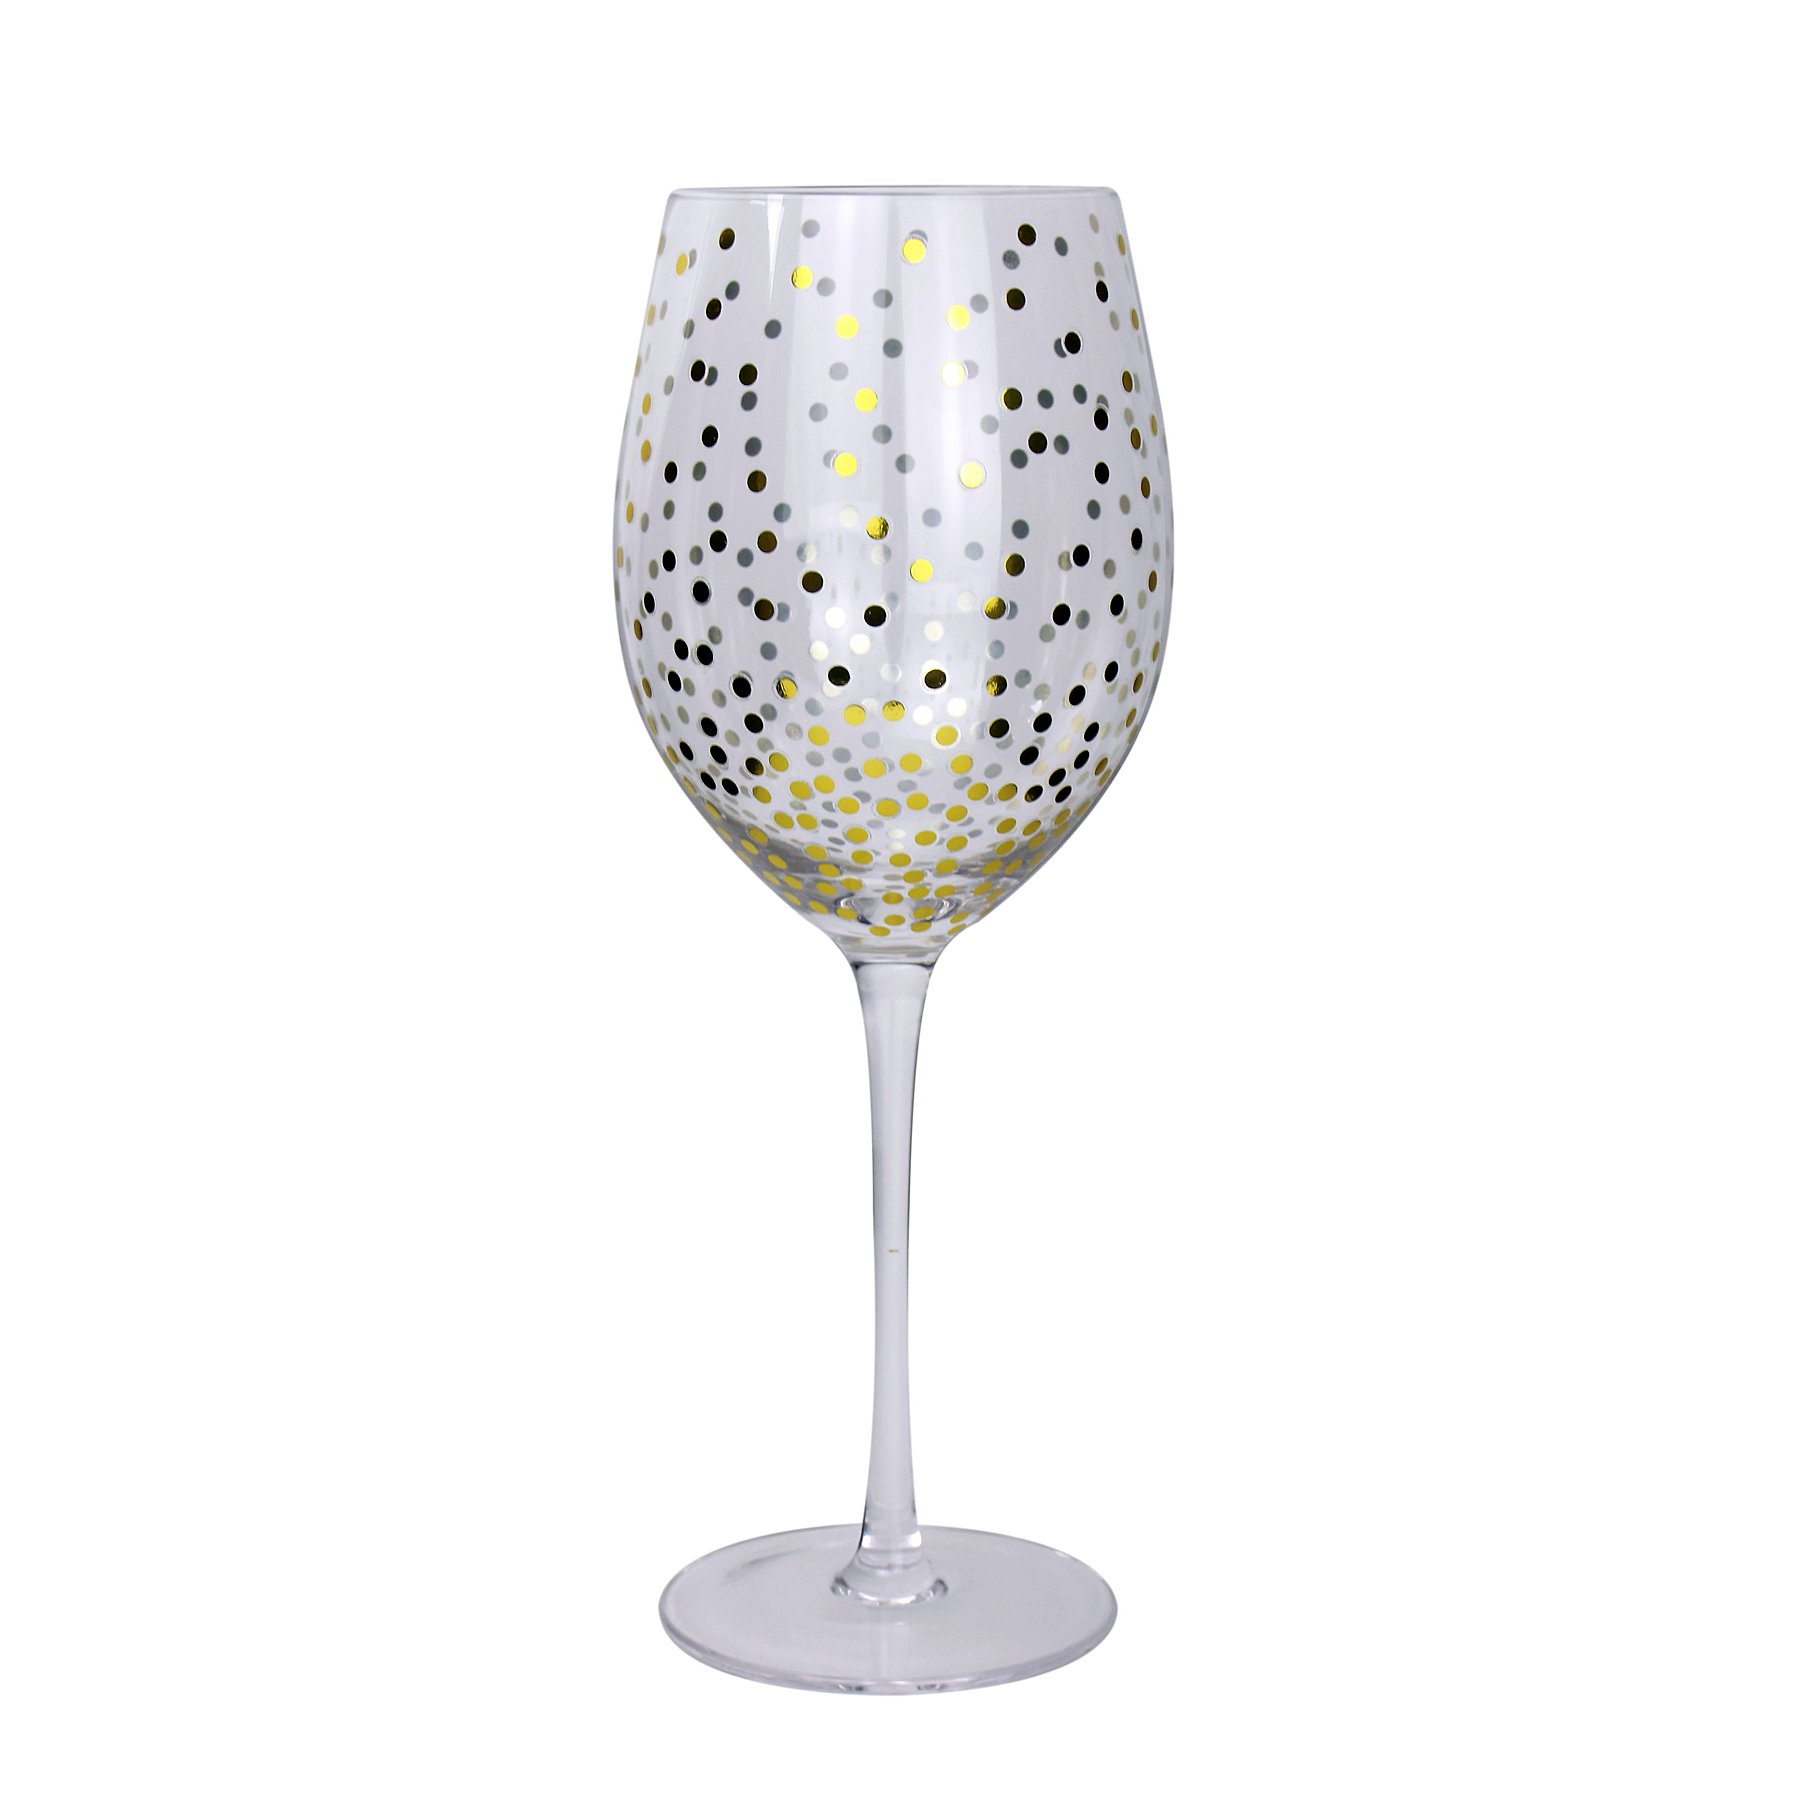 Gold Effect Polka Dot Wine Glasses Set Of 2 Home Garden George